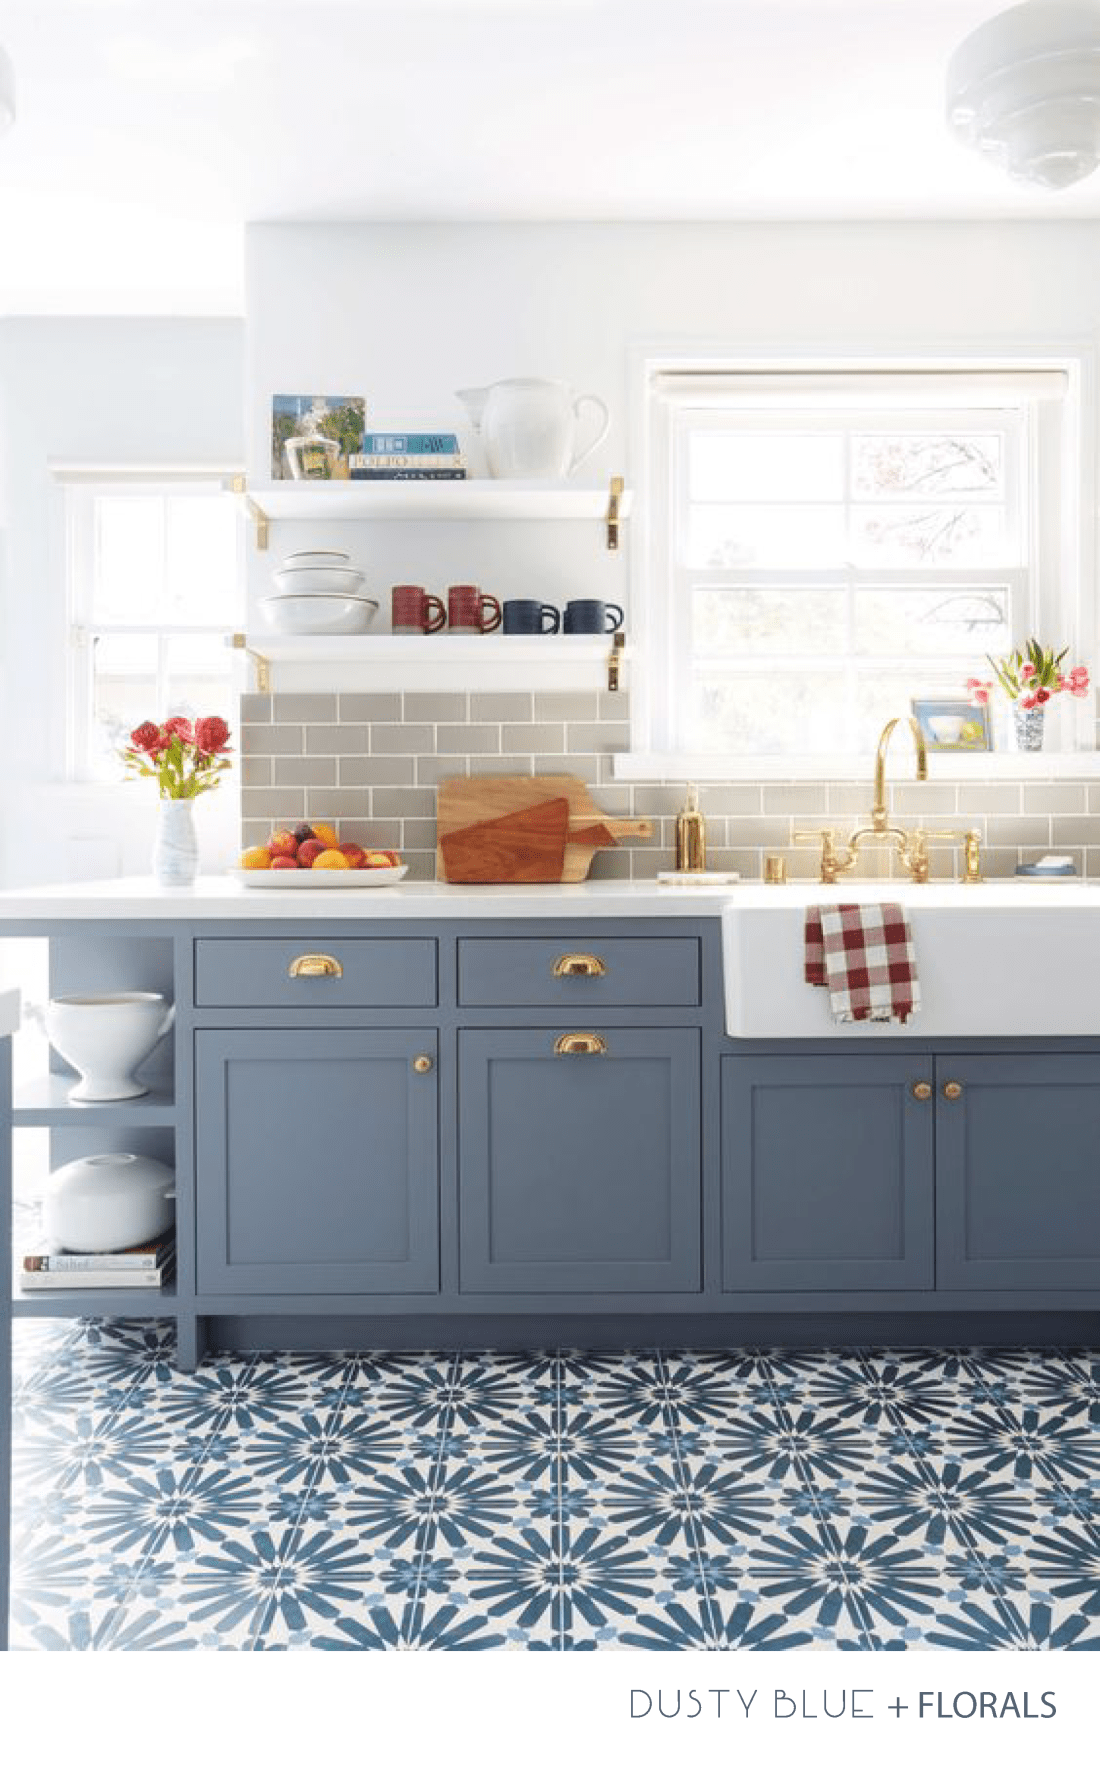 Interior Design Kitchen - Dusty Blue, Florals and Brass